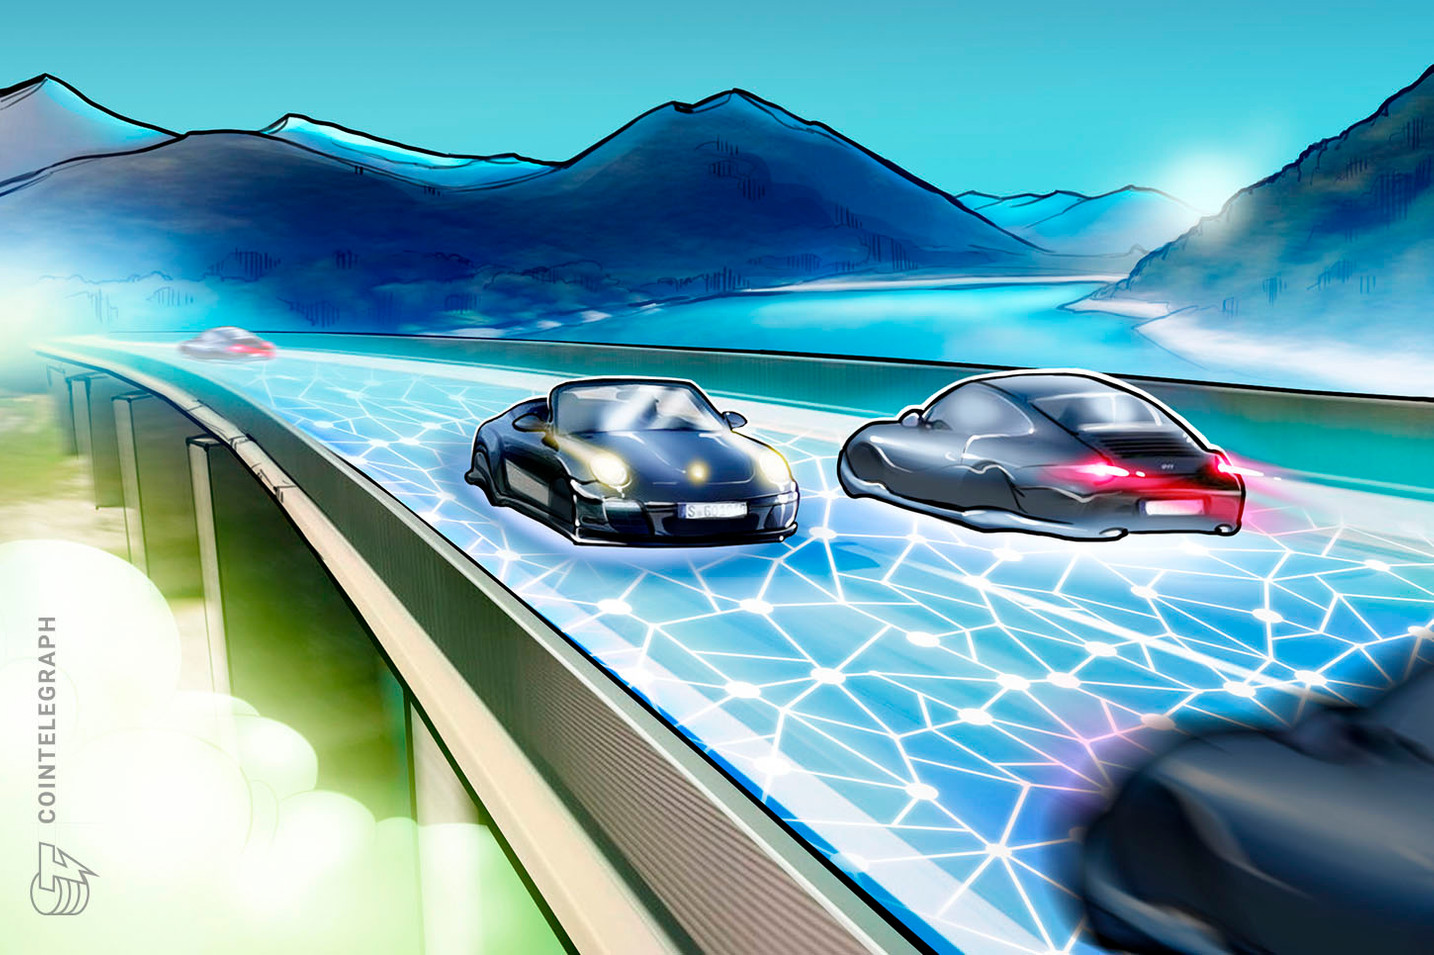 Porsche Backs Blockchain Platform for Vehicle Management in $6M Funding Round